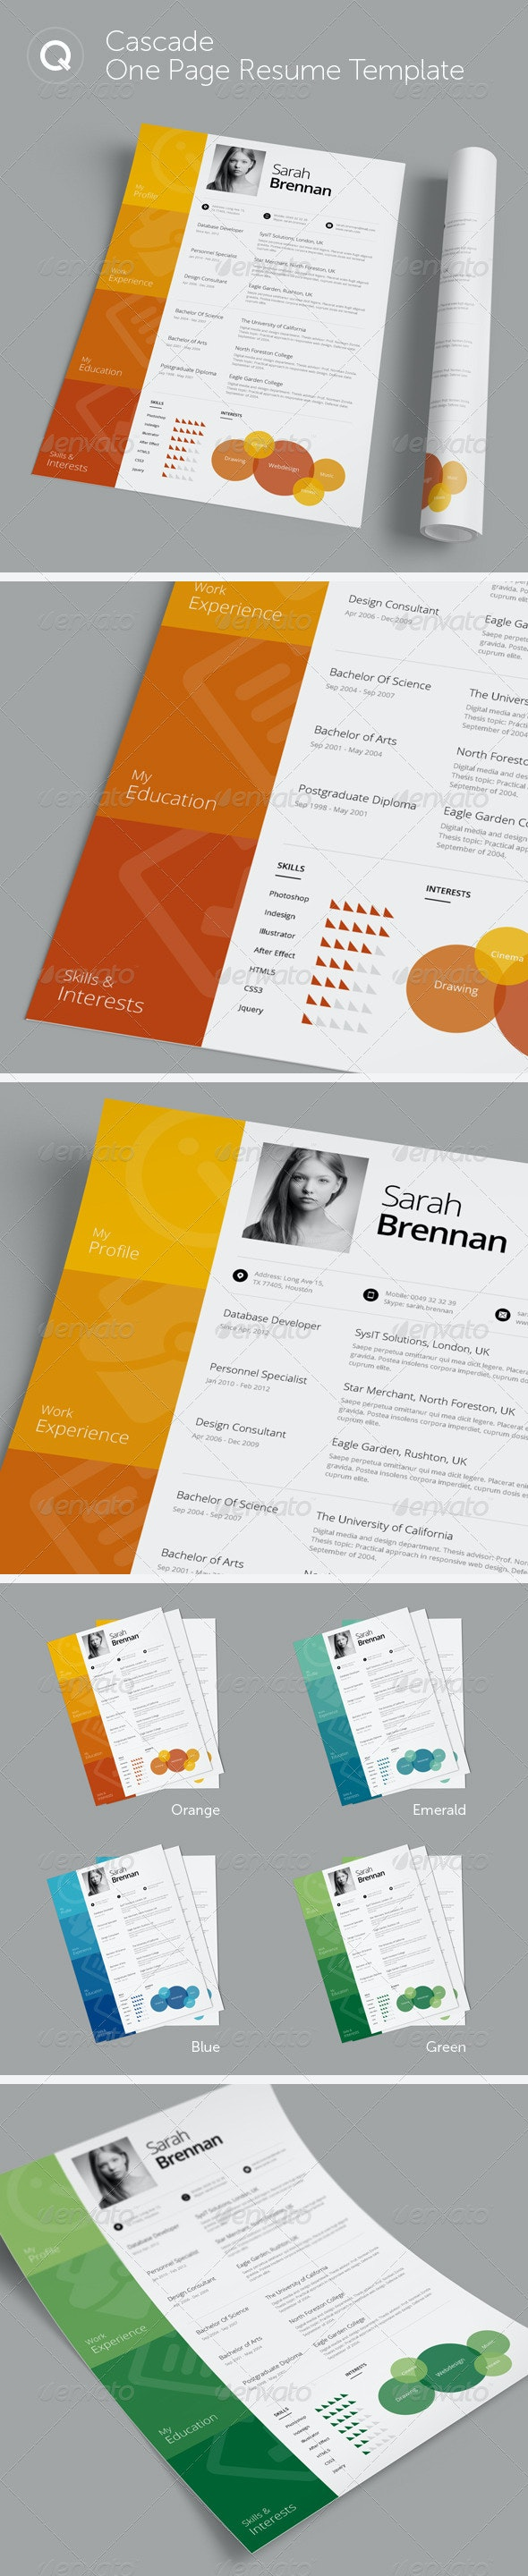 Cascade One Page Resume Template - Resumes Stationery